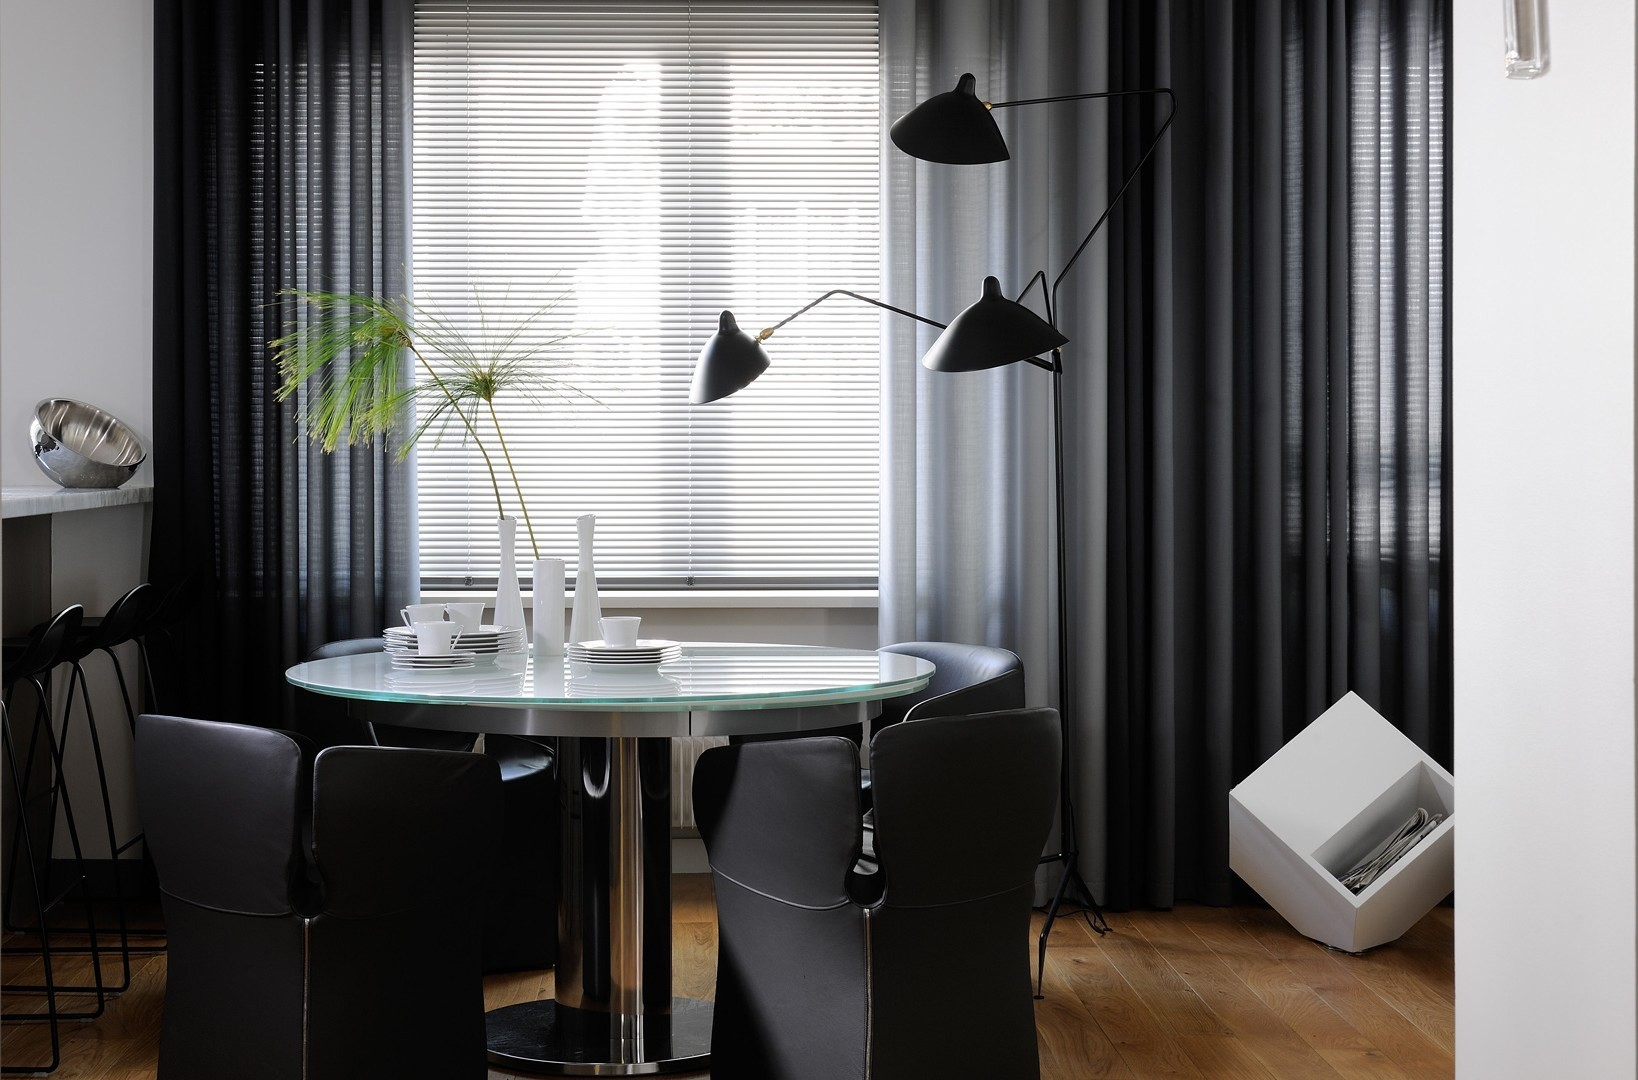 L3b lampadaire by editions serge mouille design serge mouille - Lampadaire serge mouille ...